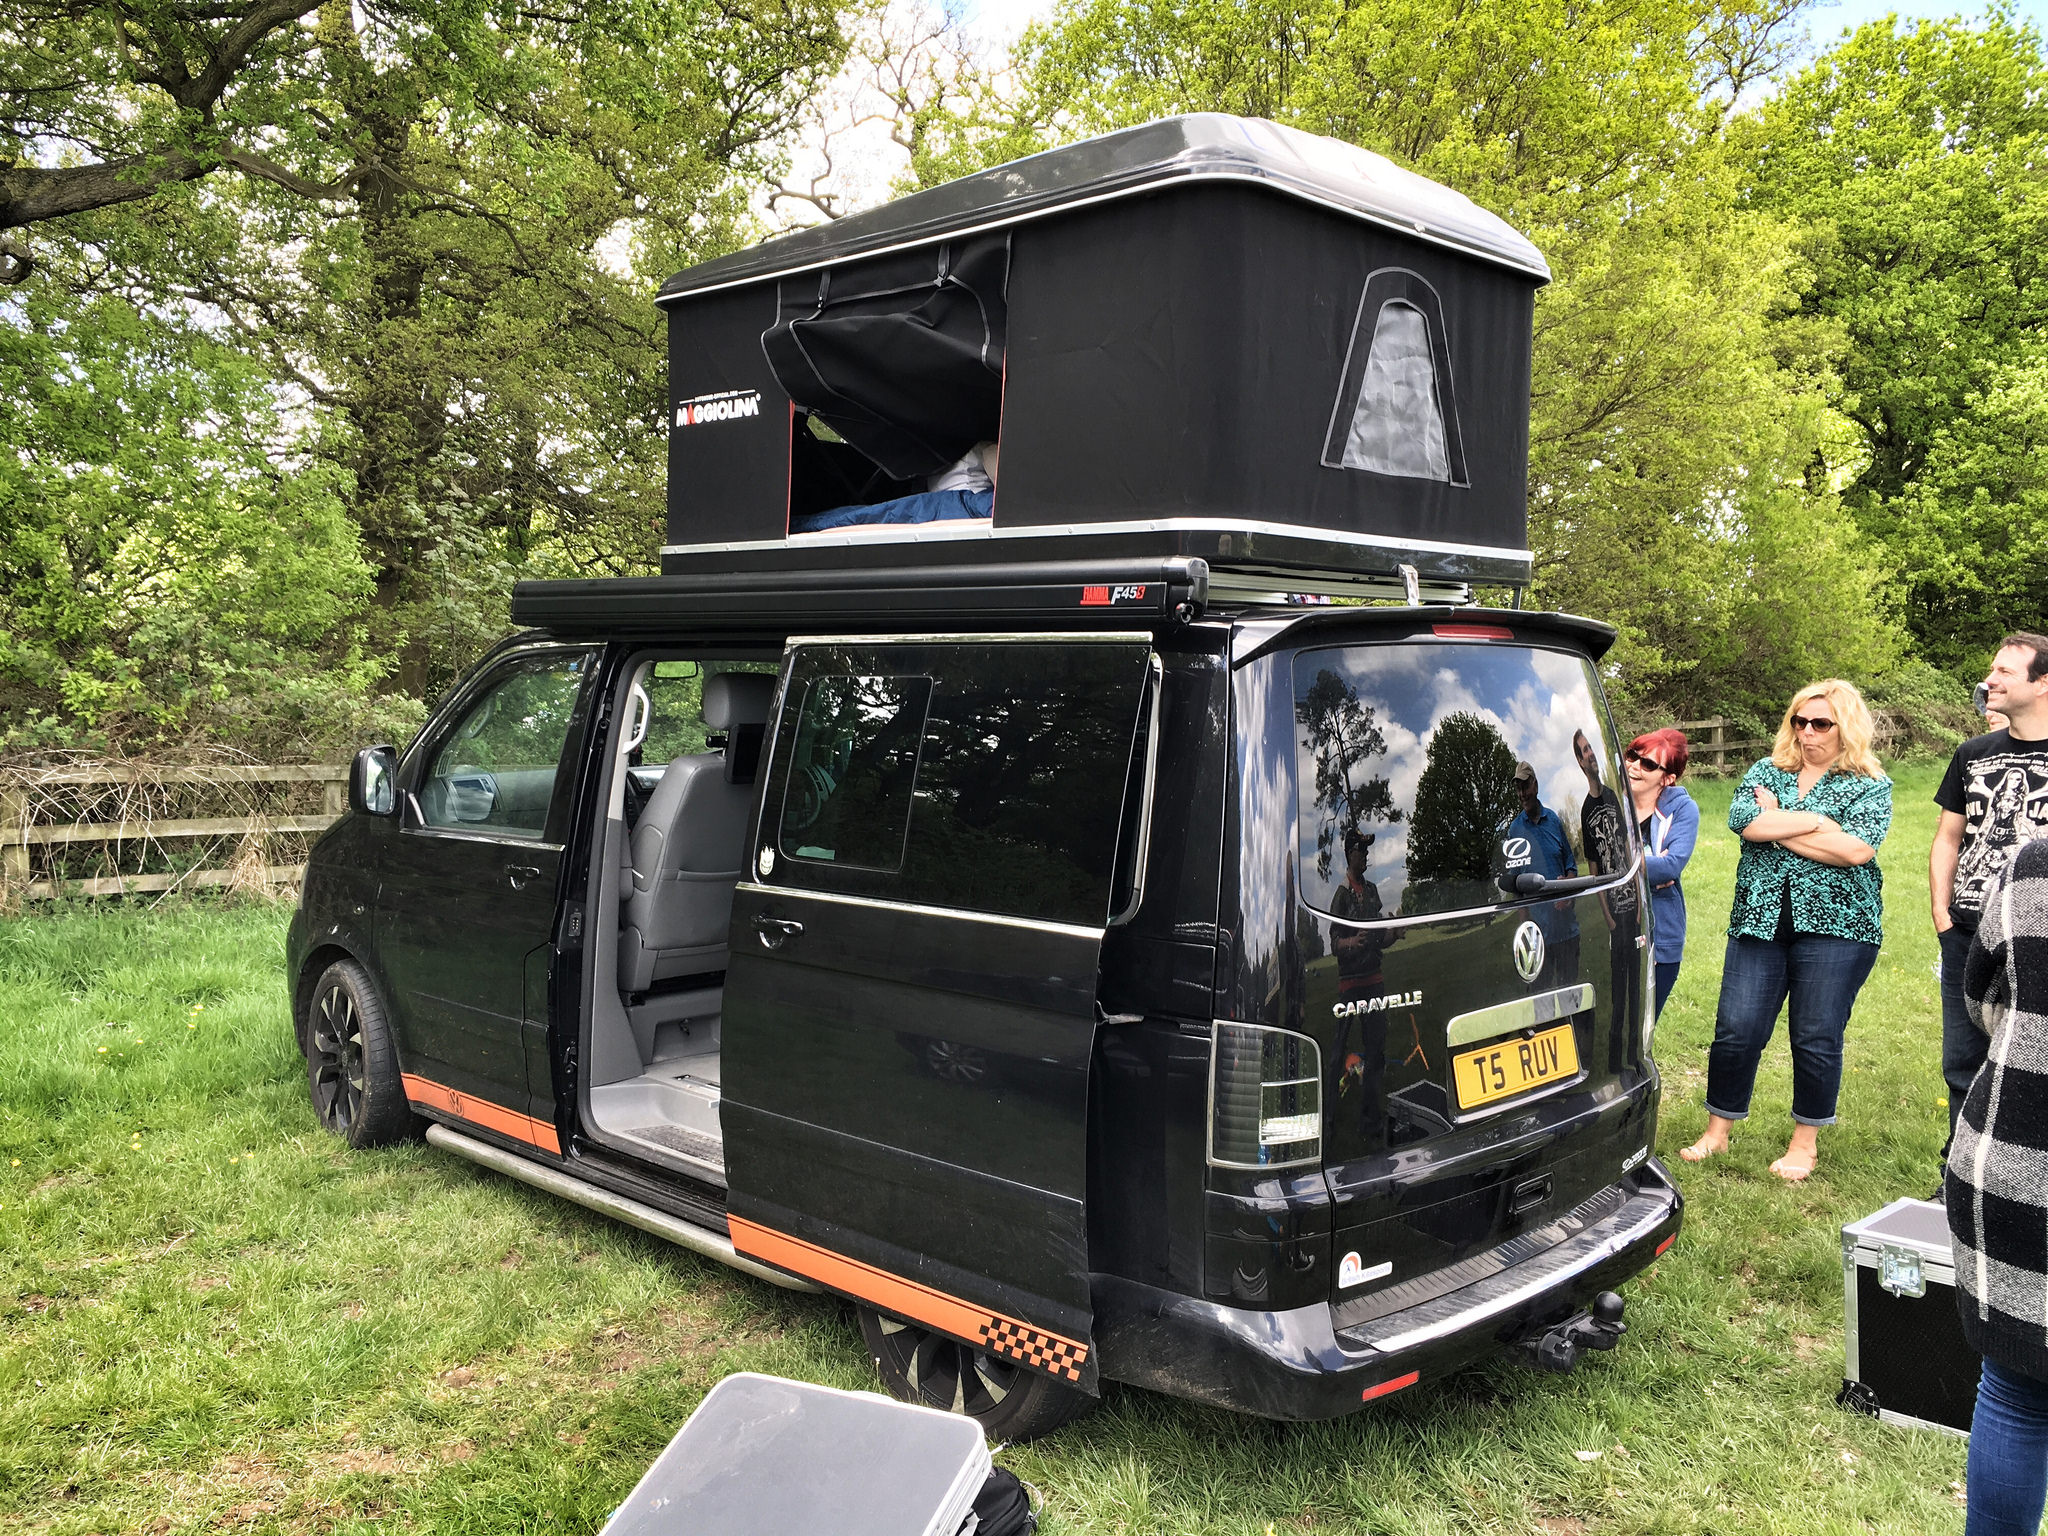 Vw T5 Tent Amp Vw T5 With Canopy Set Up In Single Pole Ridge